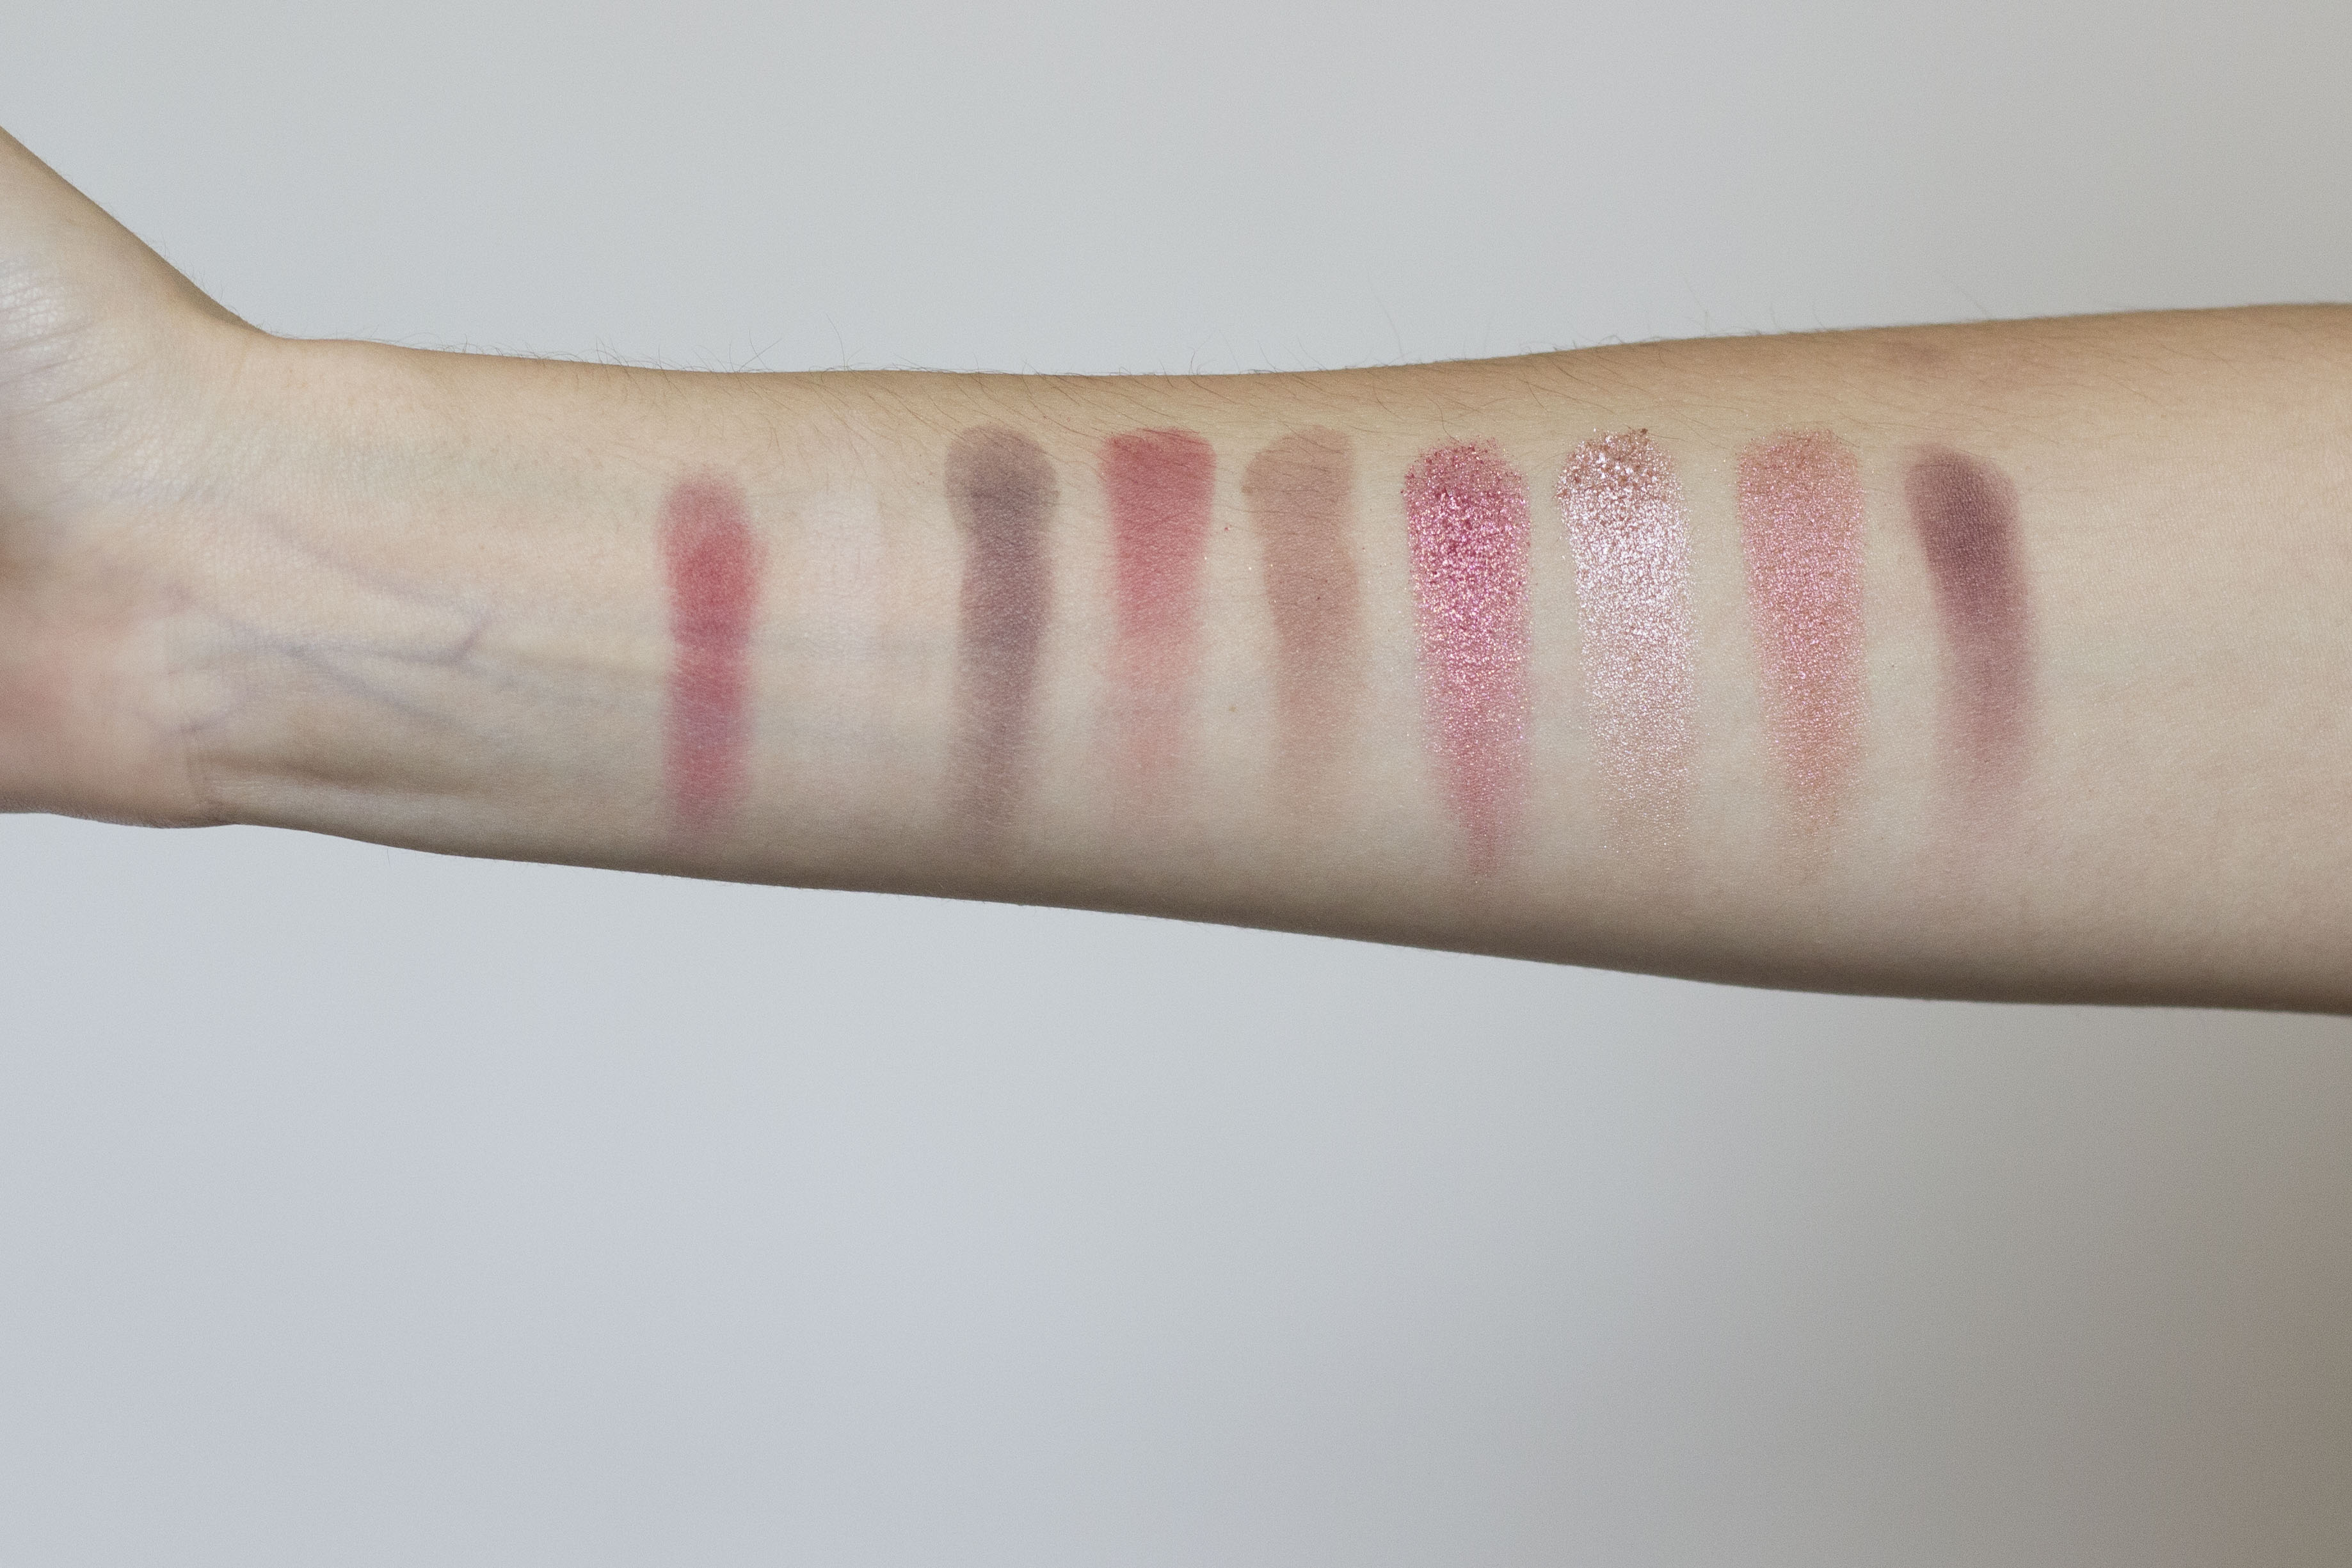 Huda Beauty Mauve Obessions Swatchs